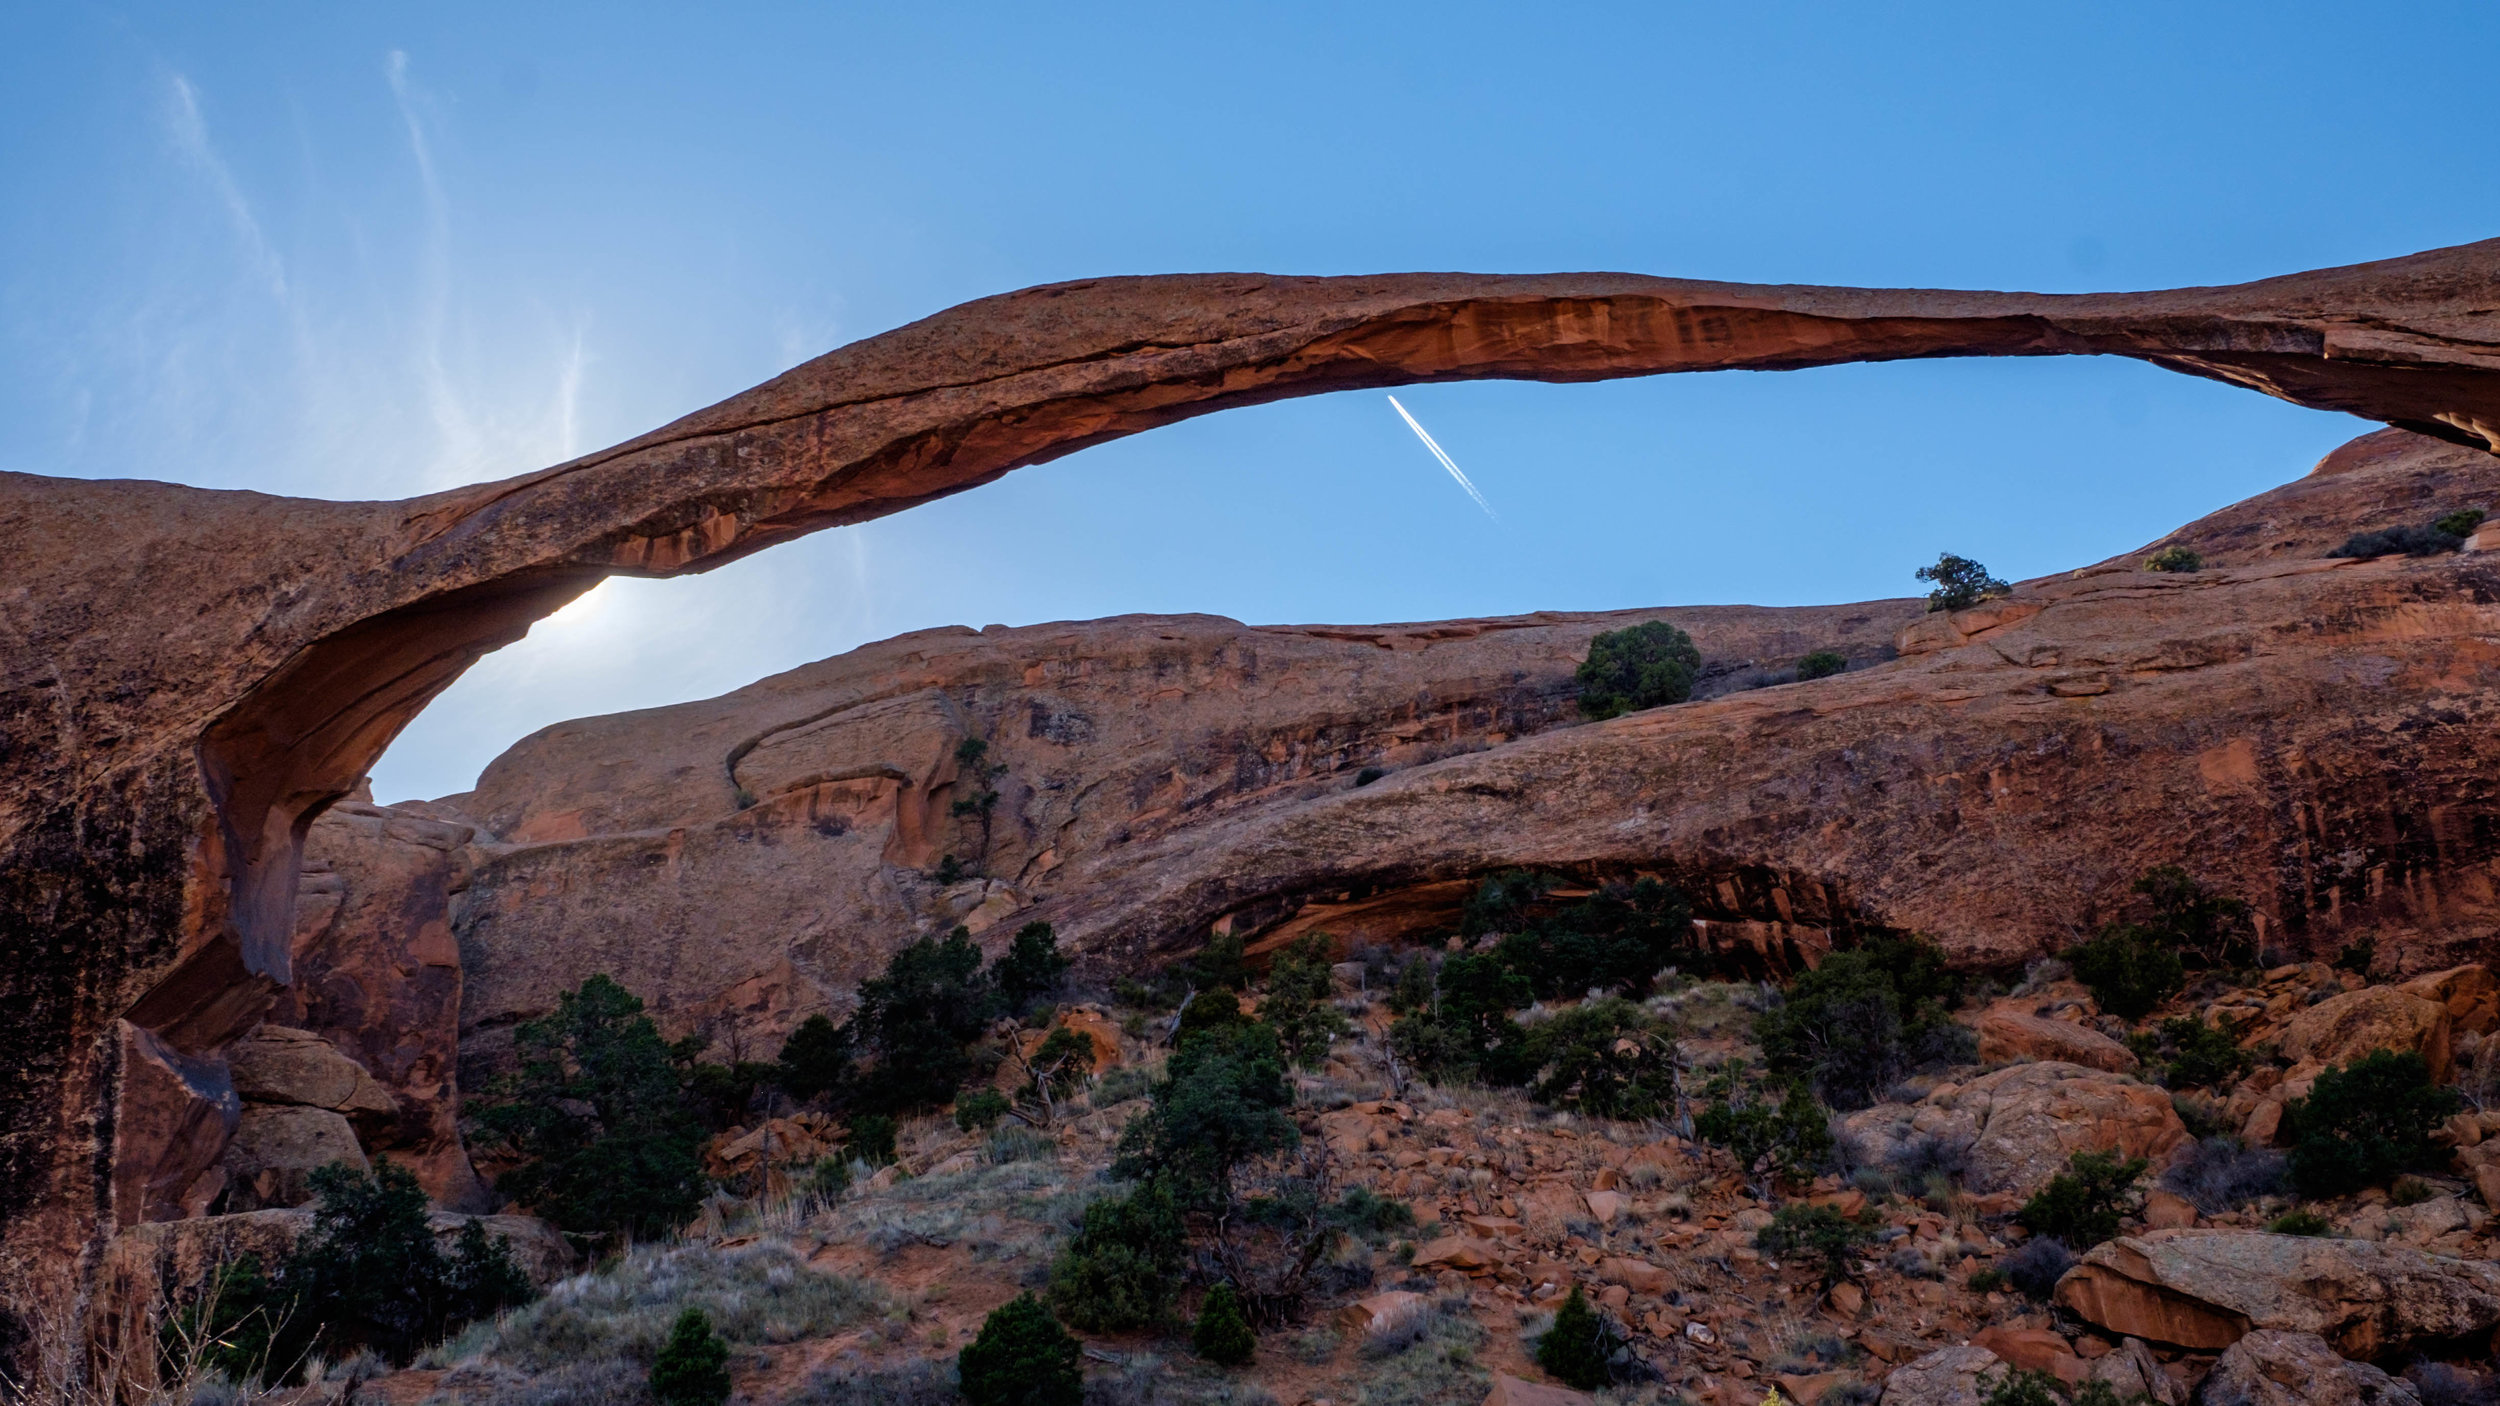 Landscape Arch is one of the first arches you come to on the Devil's Garden Trail, and is also one of the most delicate arches in the park. Who knows how much longer this fragile arch will stand.